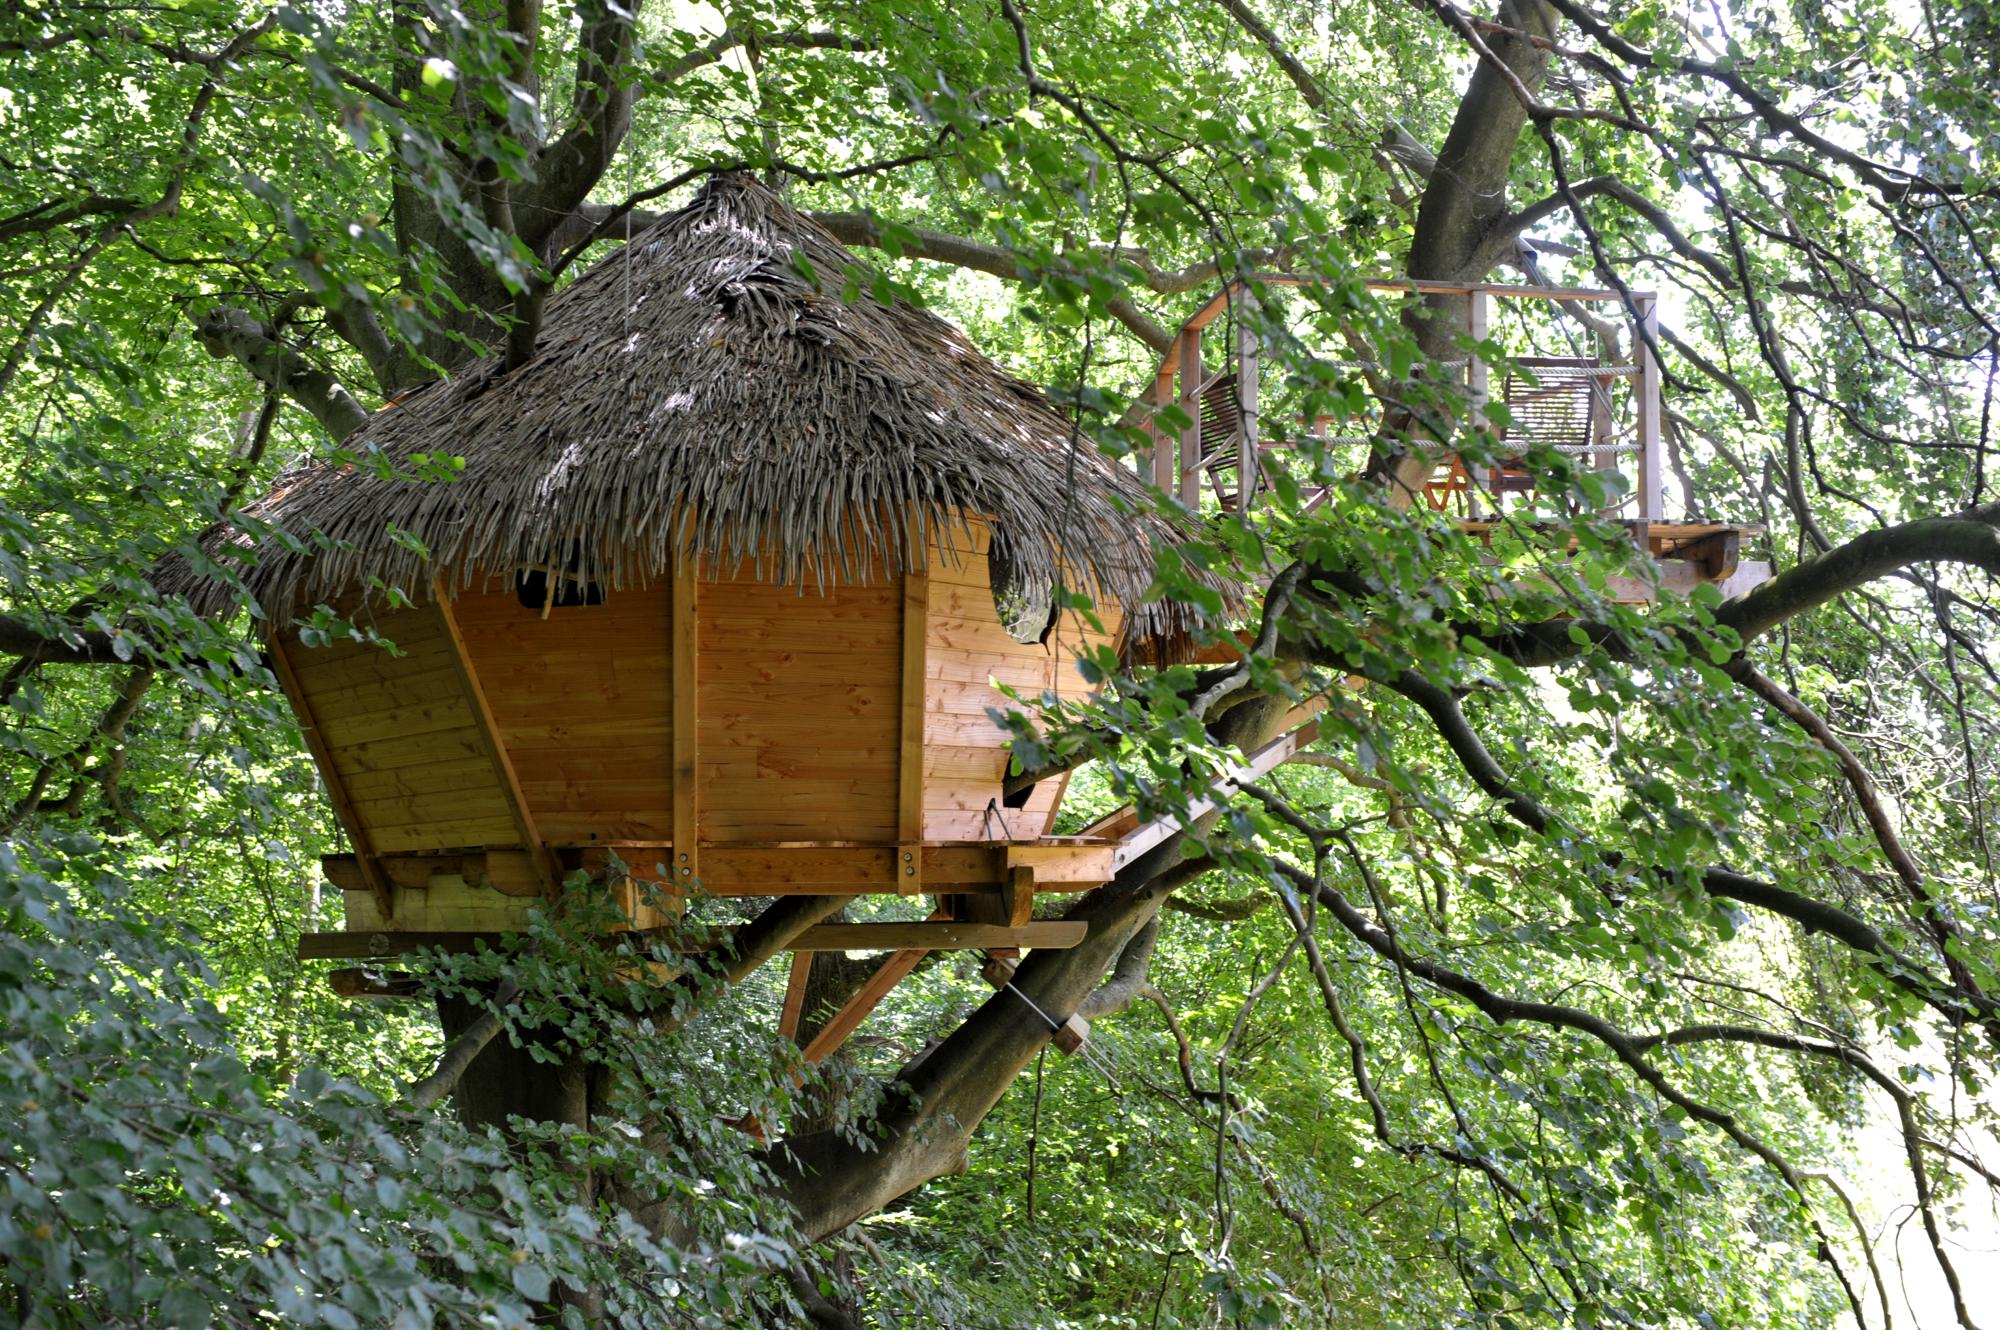 Glamping in Tree house – Cool Camping